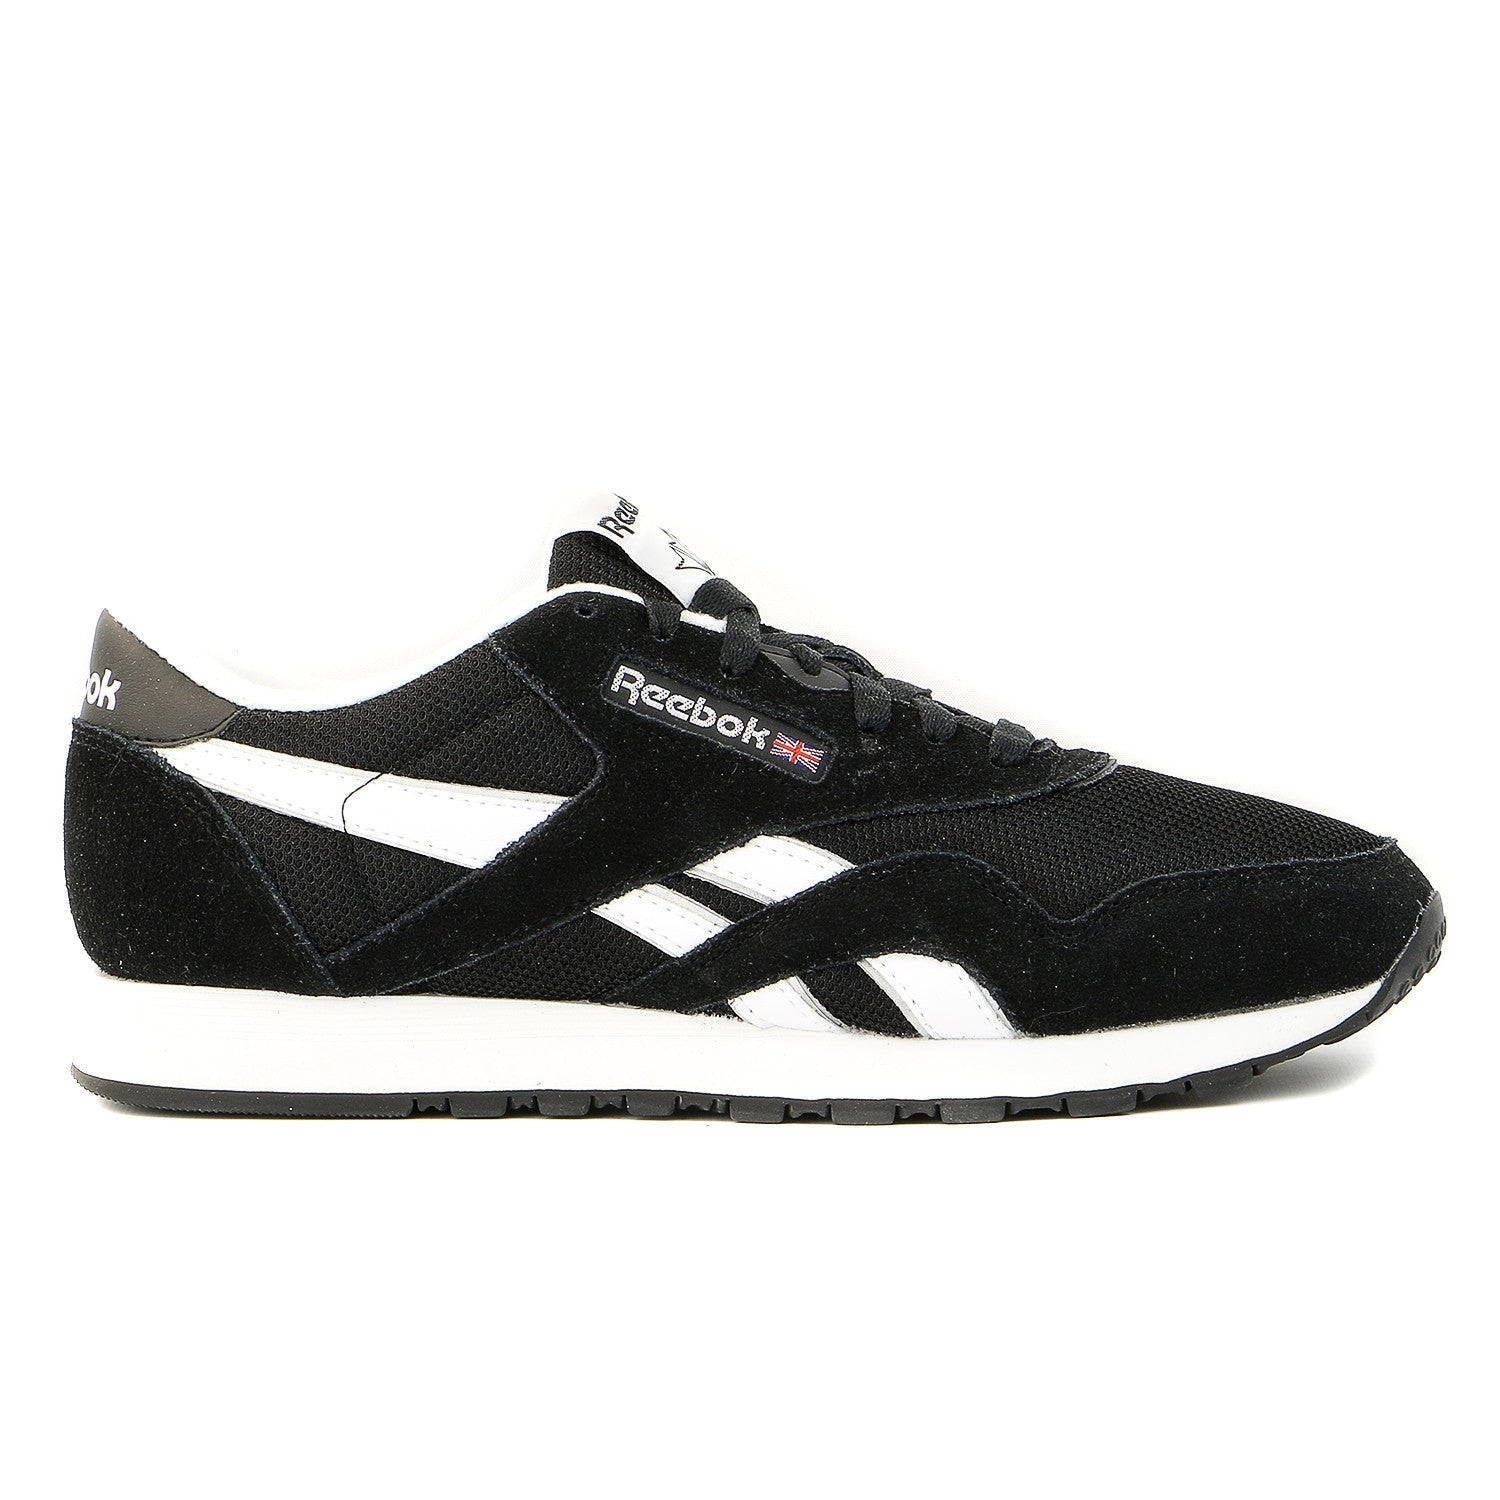 b8f9cd4f624 Reebok Classic Nylon R13 Shoe - BLACK WHITE - Mens - Shoplifestyle